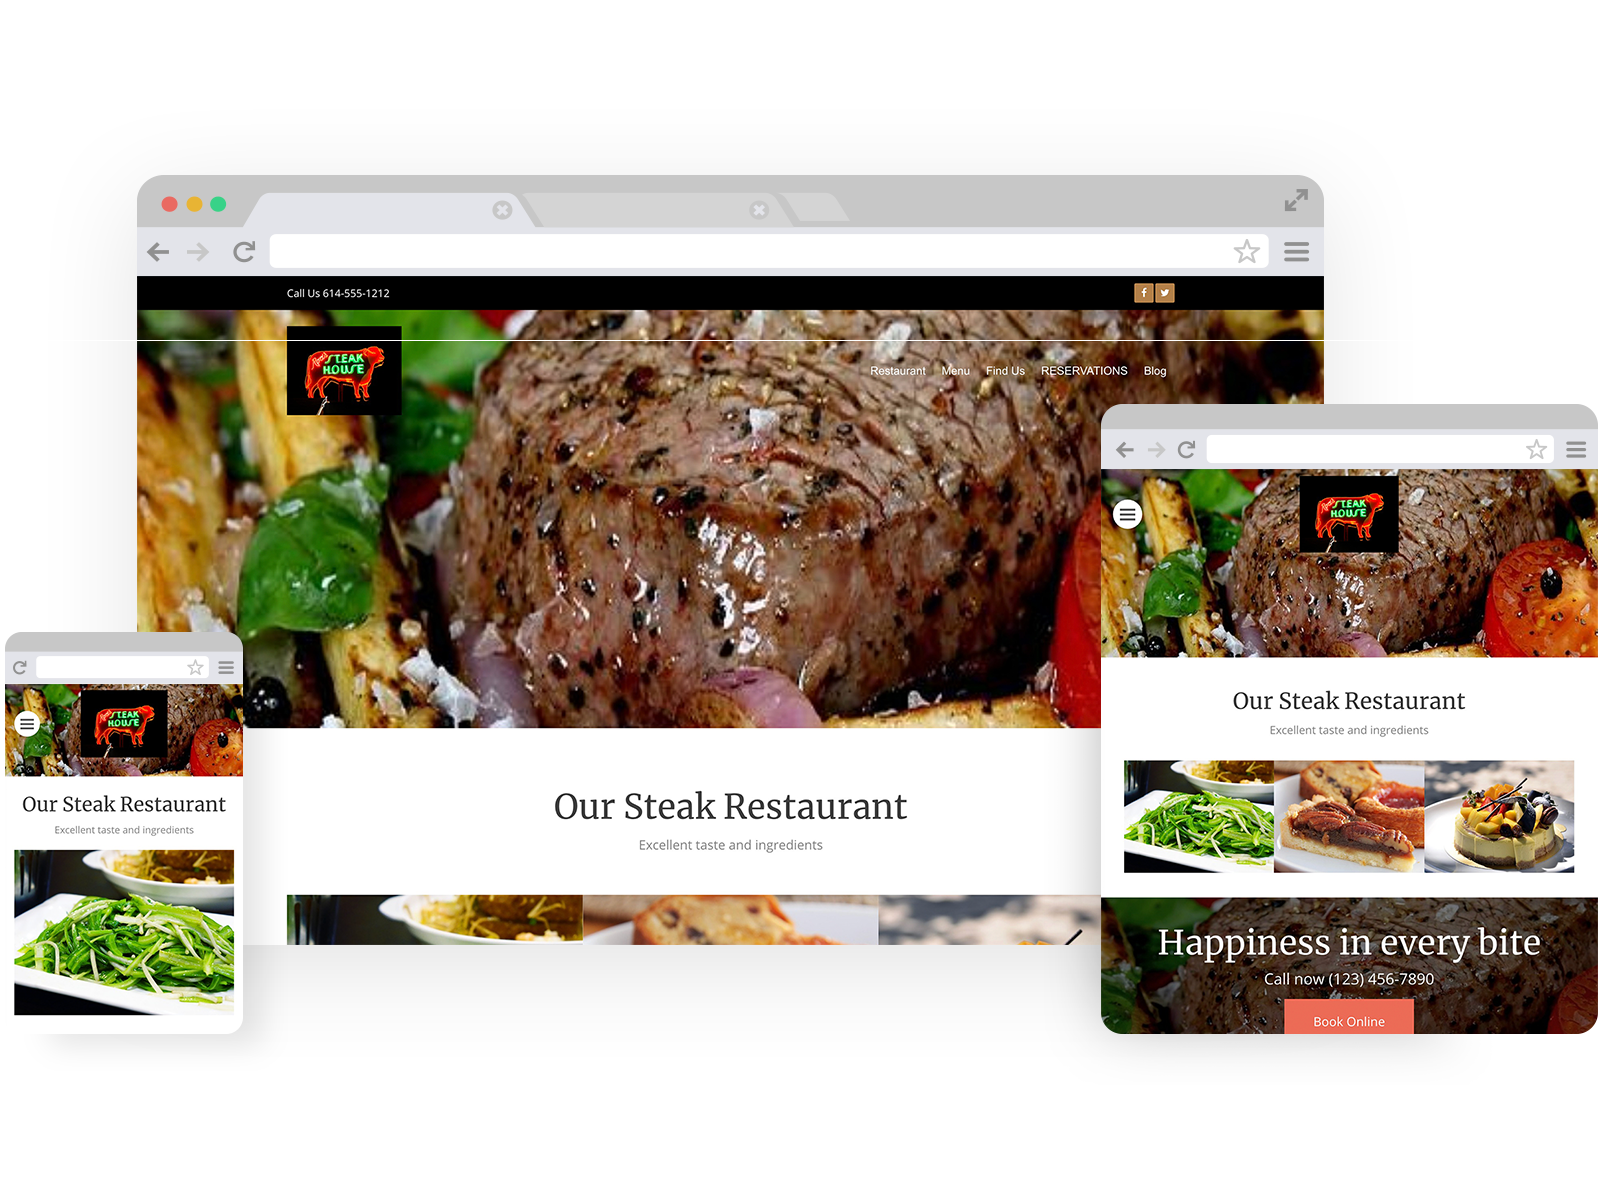 Steak house templates - template shown on Desktop, Tablet, and Mobile views.